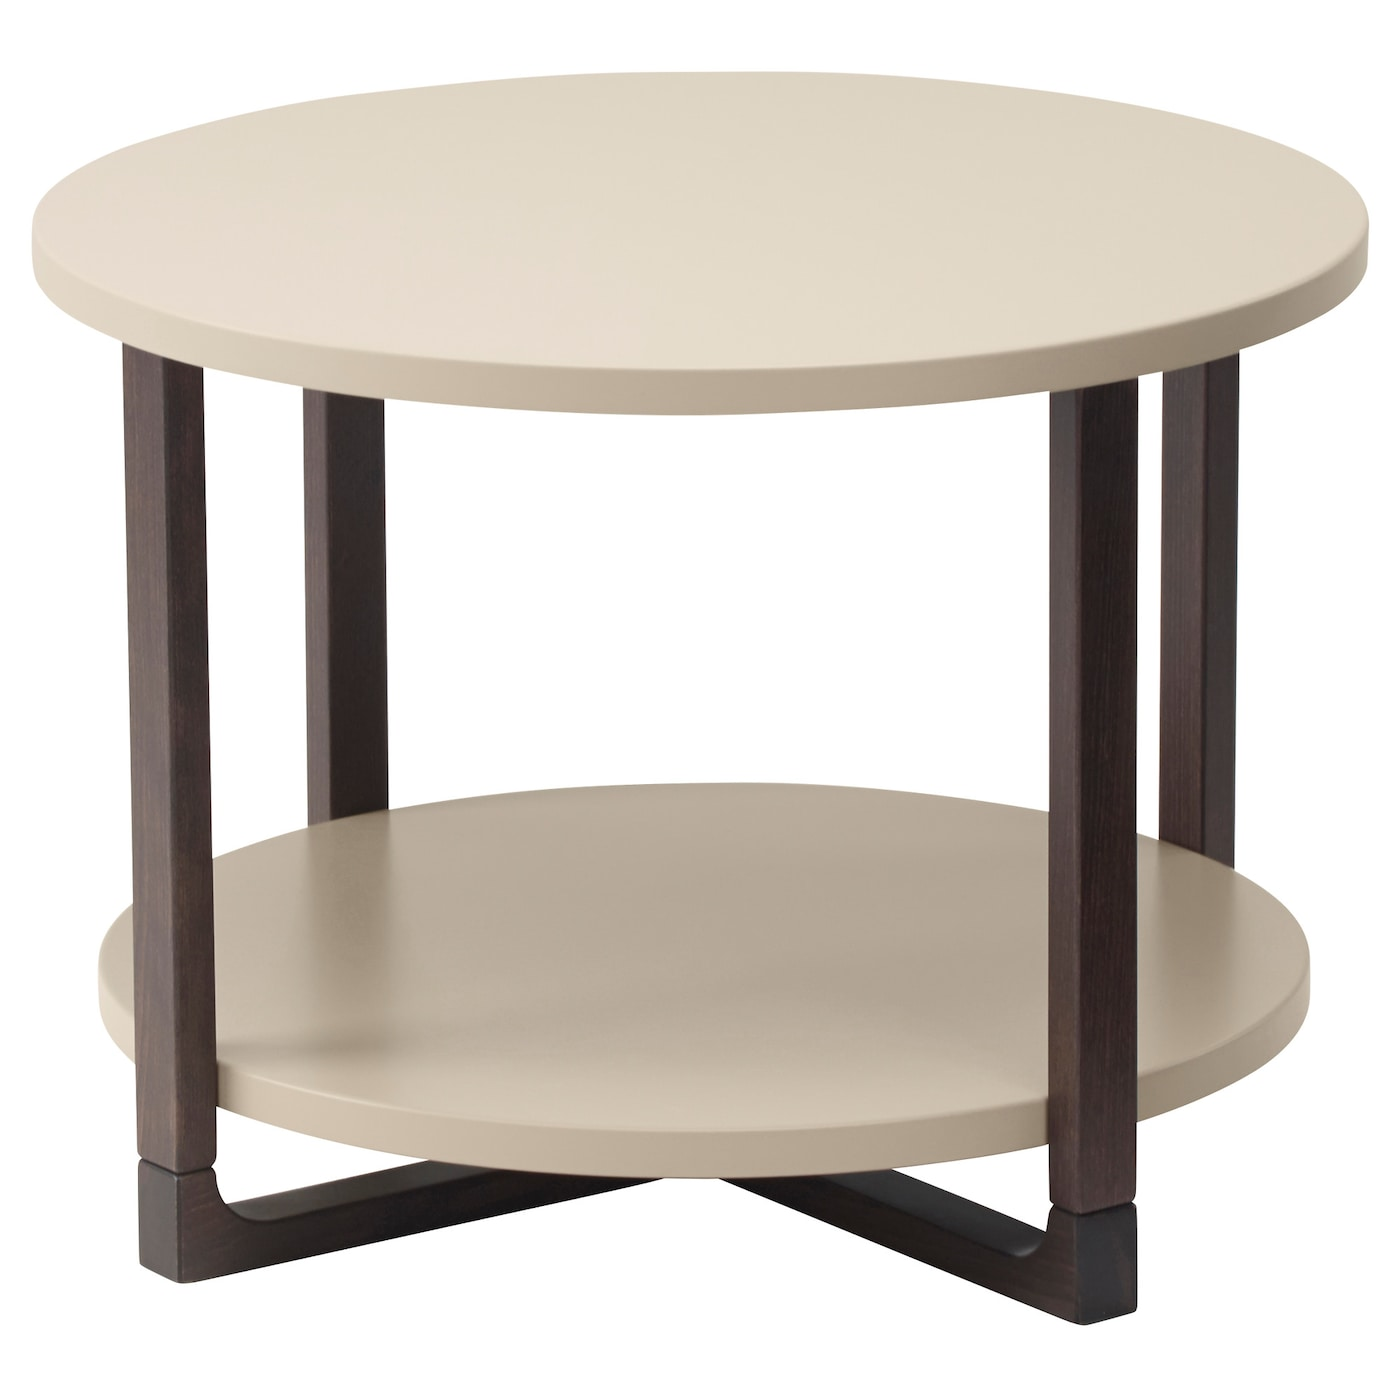 Rissna side table beige 60 cm ikea - Photo de table ...